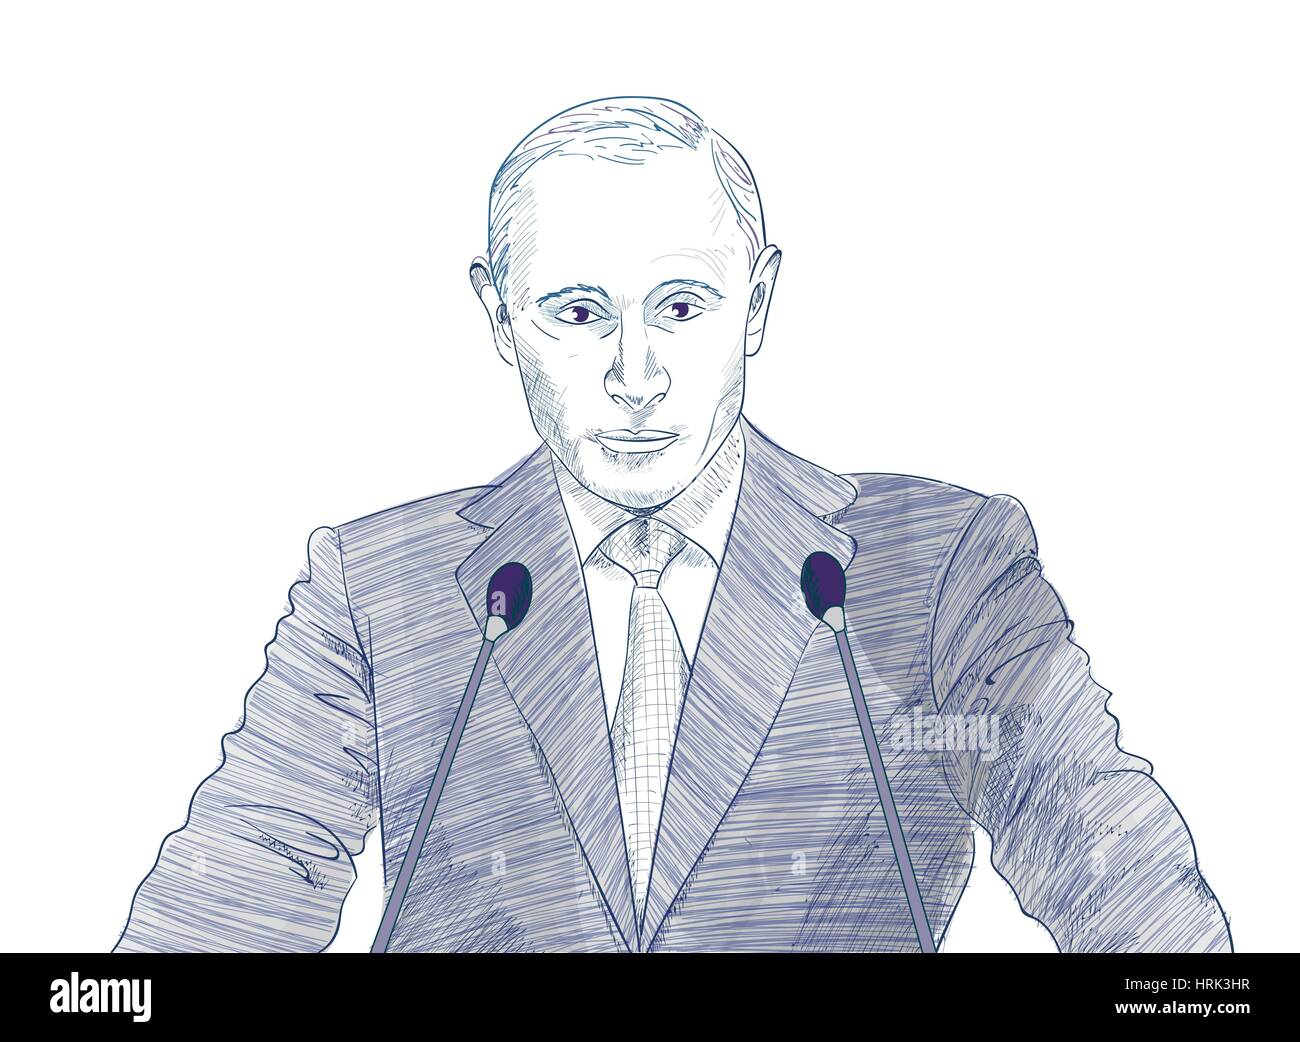 Vector illustration, portrait of President Vladimir Putin - Stock Image